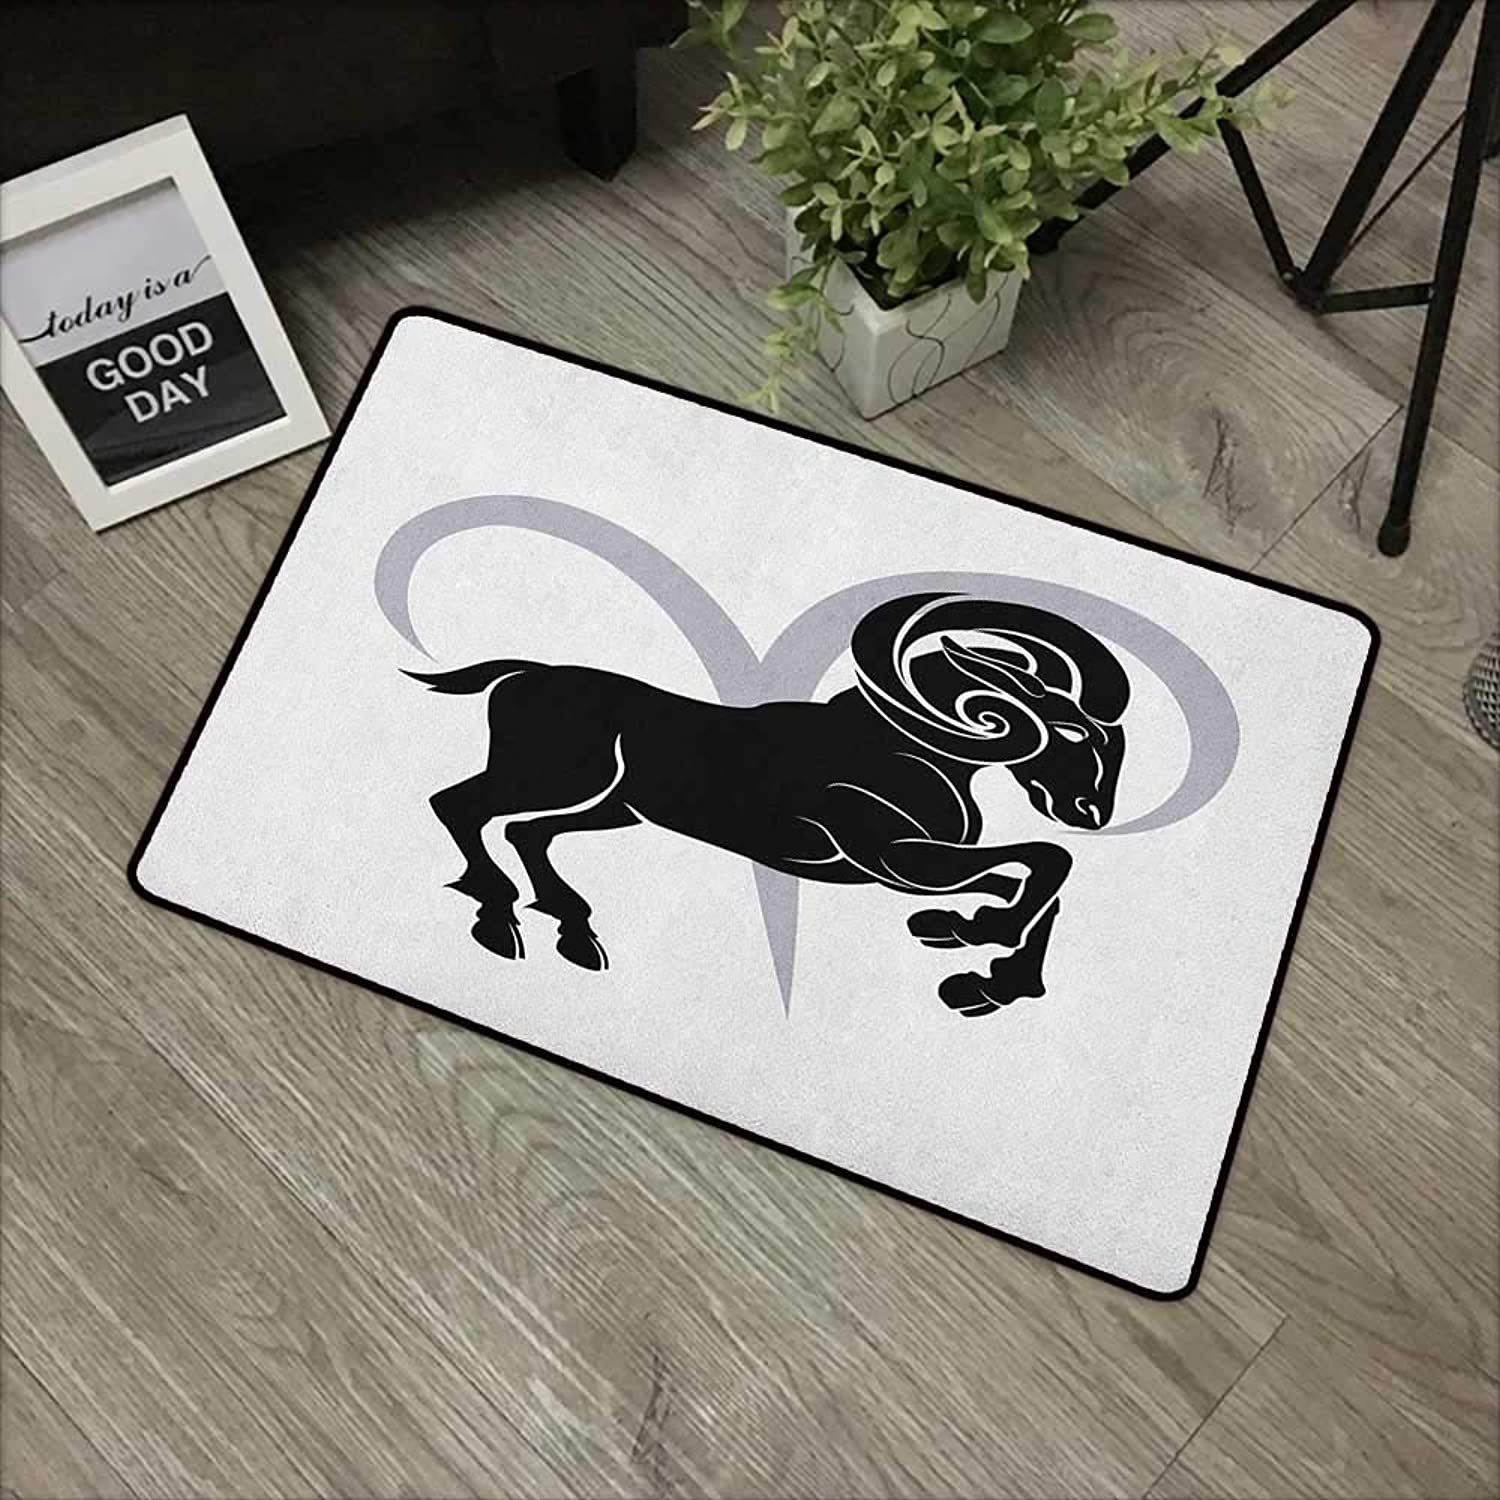 Meeting Room mat W35 x L59 INCH Zodiac Aries,Black Silhouette of a Astrological Animal Standing on Grey Sign, Black Pale Grey and White Non-Slip Door Mat Carpet